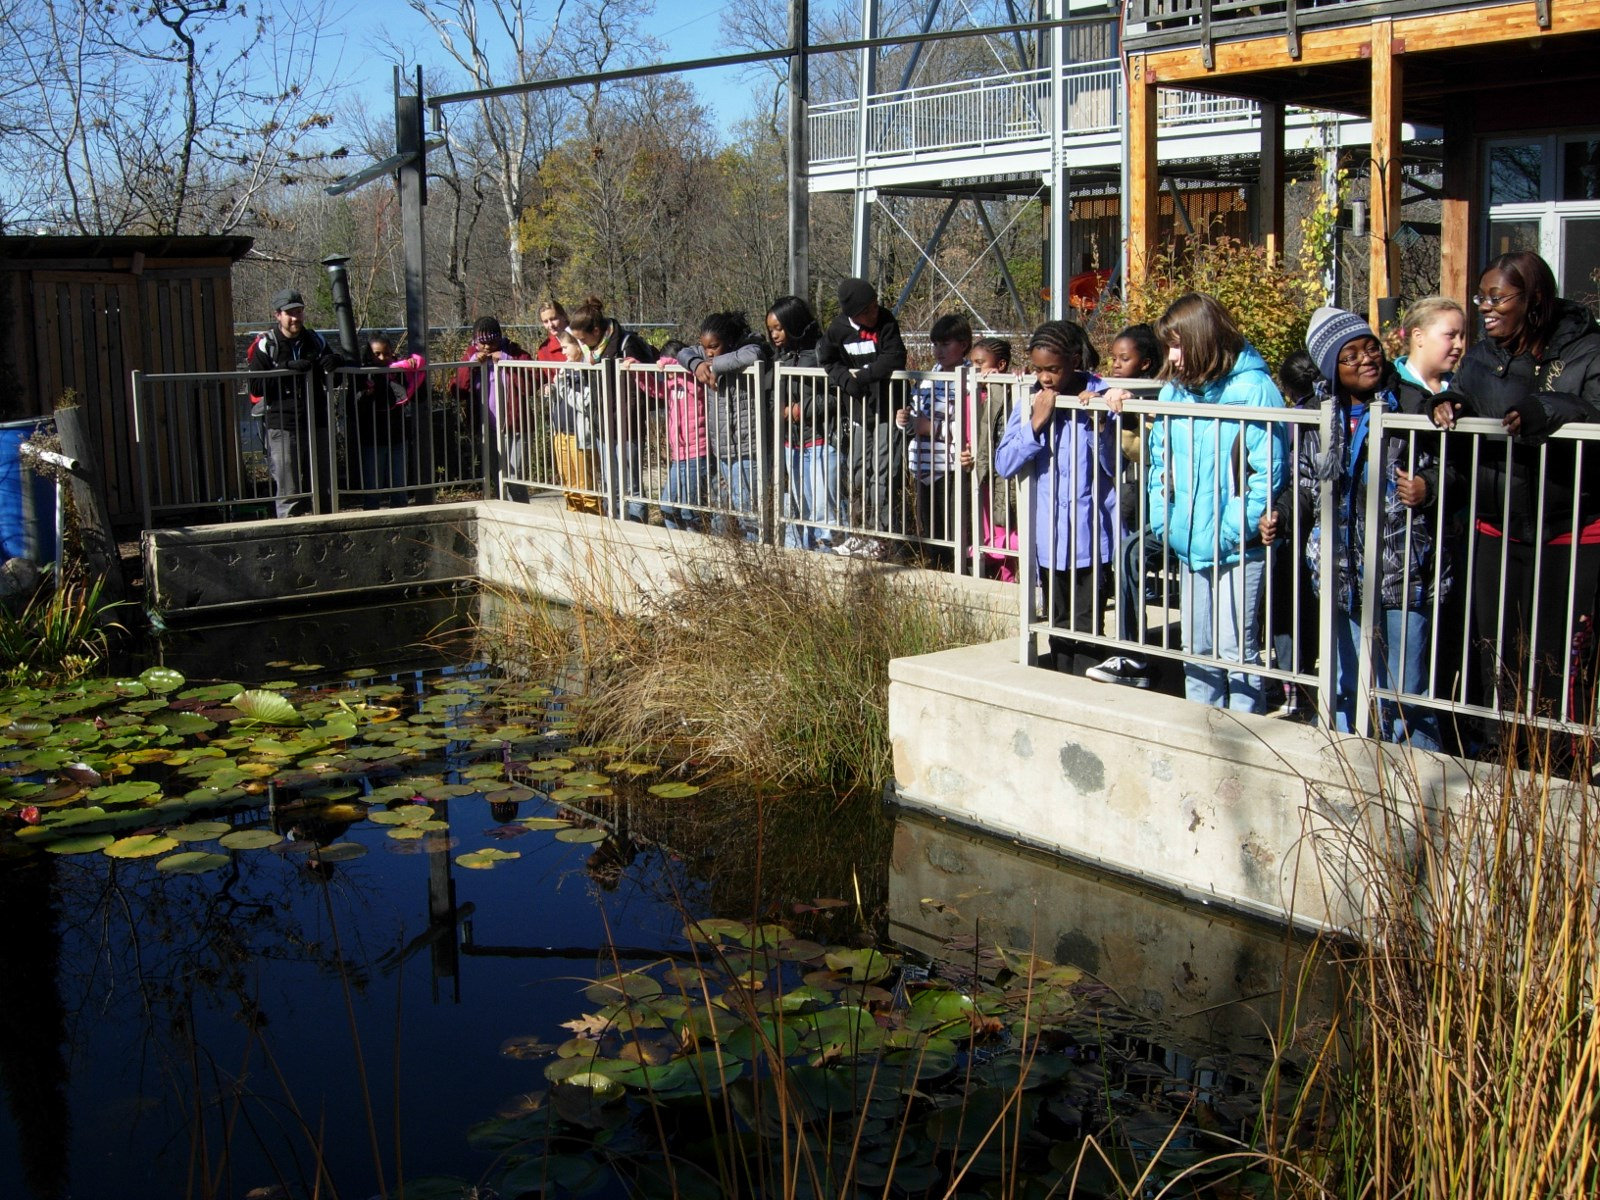 <table class=&quot;lightbox&quot;><tr><td colspan=2 class=&quot;lightbox-title&quot;>Urban Ecology Education</td></tr><tr><td colspan=2 class=&quot;lightbox-caption&quot;>A crowd of children learning about stormwater runoff at the Urban Ecology Center. </td></tr><tr><td colspan=2 class=&quot;lightbox-spacer&quot;></td></tr><tr class=&quot;lightbox-detail&quot;><td class=&quot;cell-title&quot;>Source: </td><td class=&quot;cell-value&quot;>From Flickr. Photograph by Aaron Volkening. CC BY 2.0.<br /><a href=&quot;https://www.flickr.com/photos/87297882@N03/14603057430/&quot; target=&quot;_blank&quot;>Flickr</a></td></tr><tr class=&quot;filler-row&quot;><td colspan=2>&nbsp;</td></tr></table>